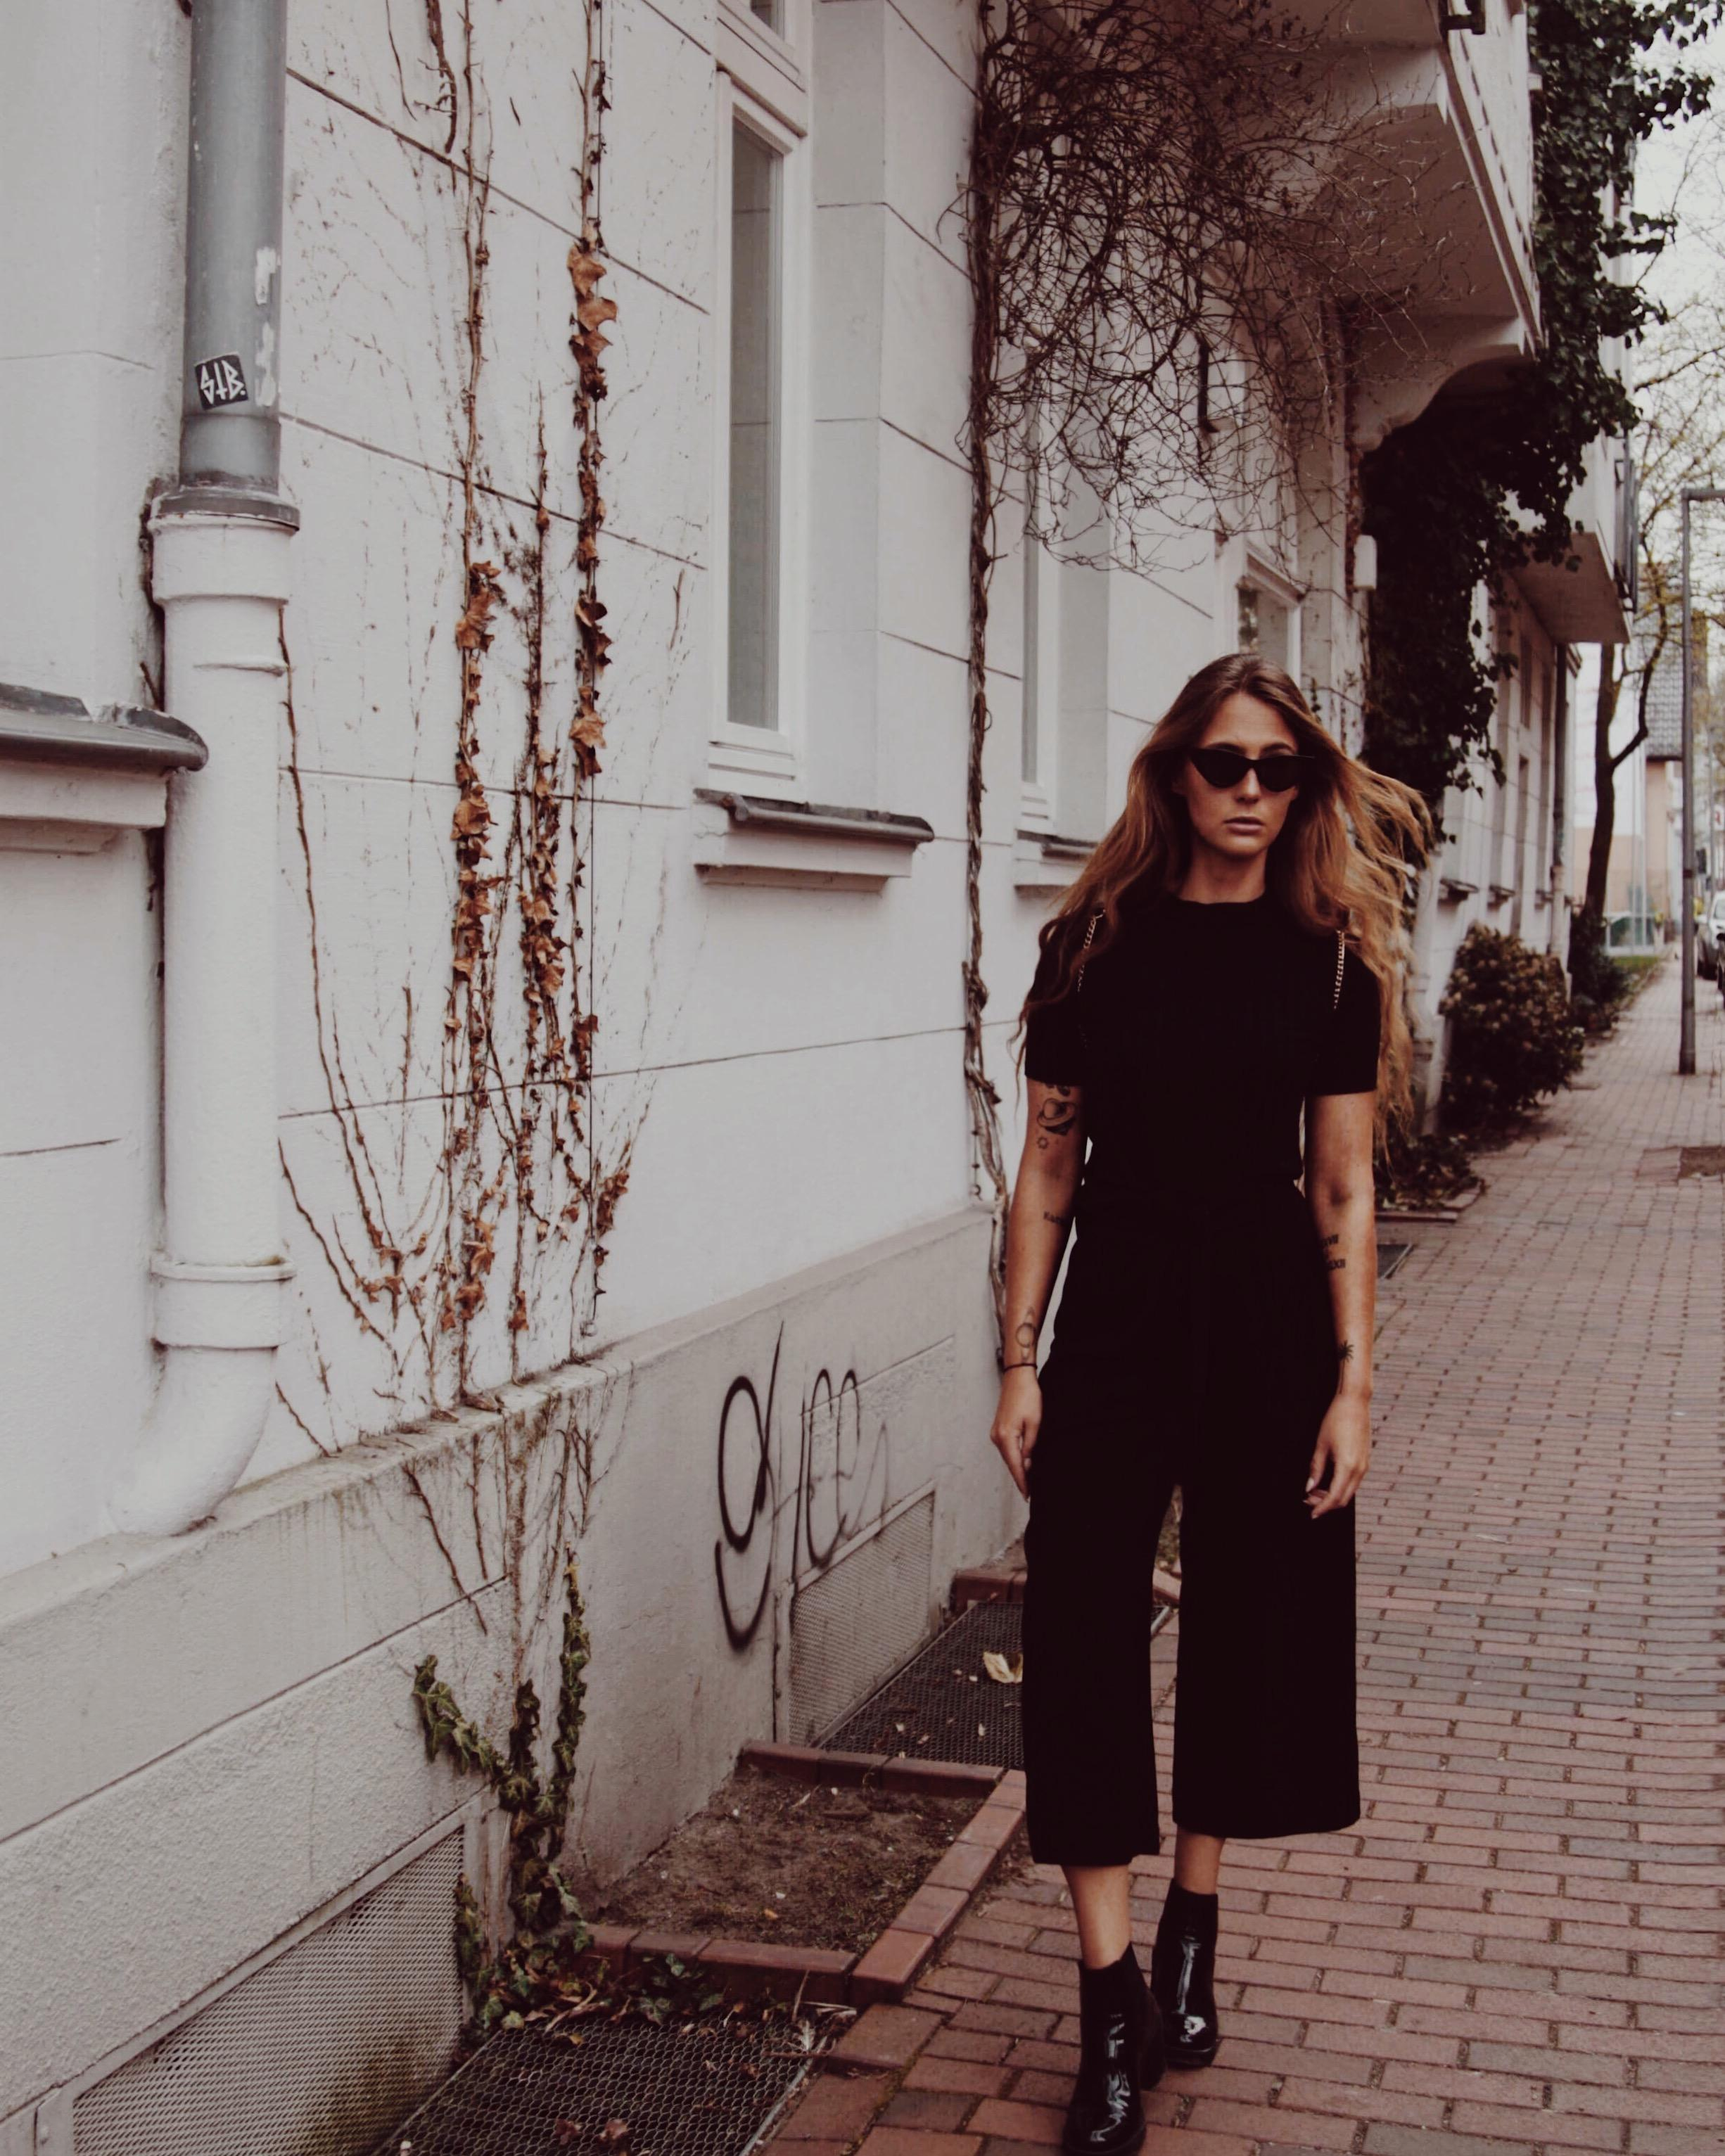 Black is always a right choice #allblack #fashion #ootd #streetstyle